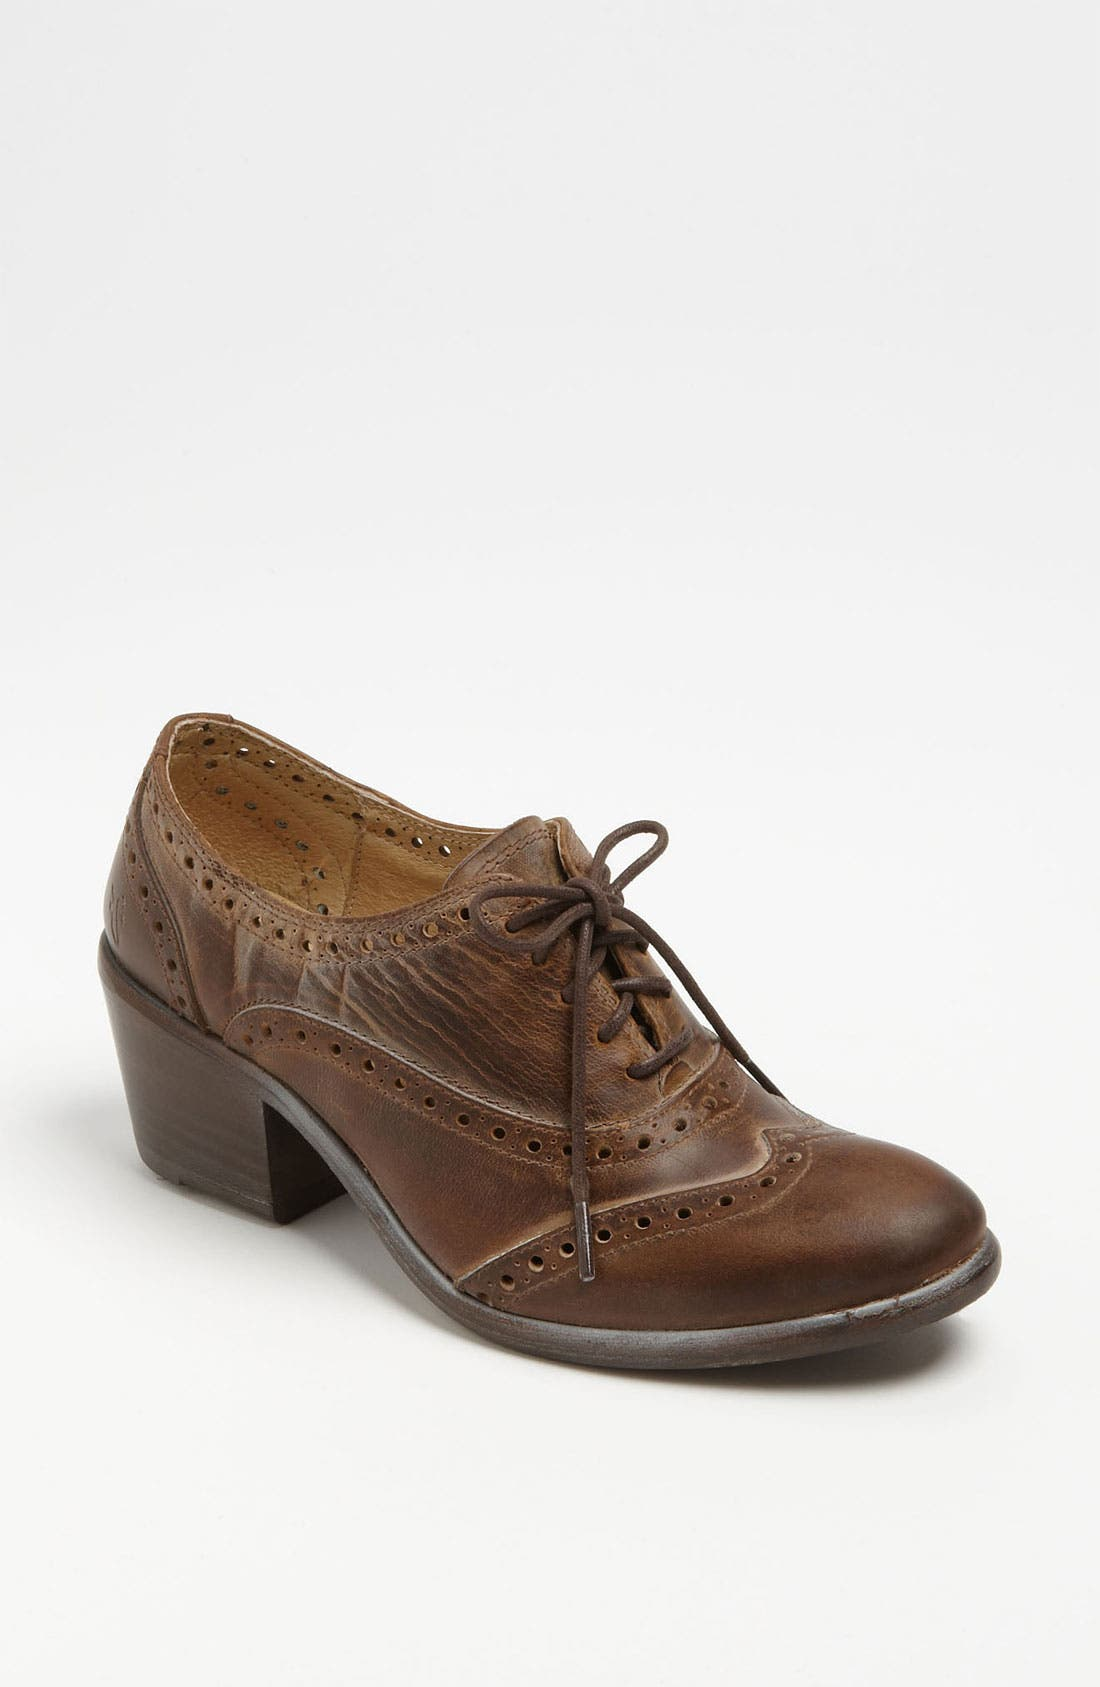 Main Image - Frye 'Maggie' Perforated Wingtip Oxford